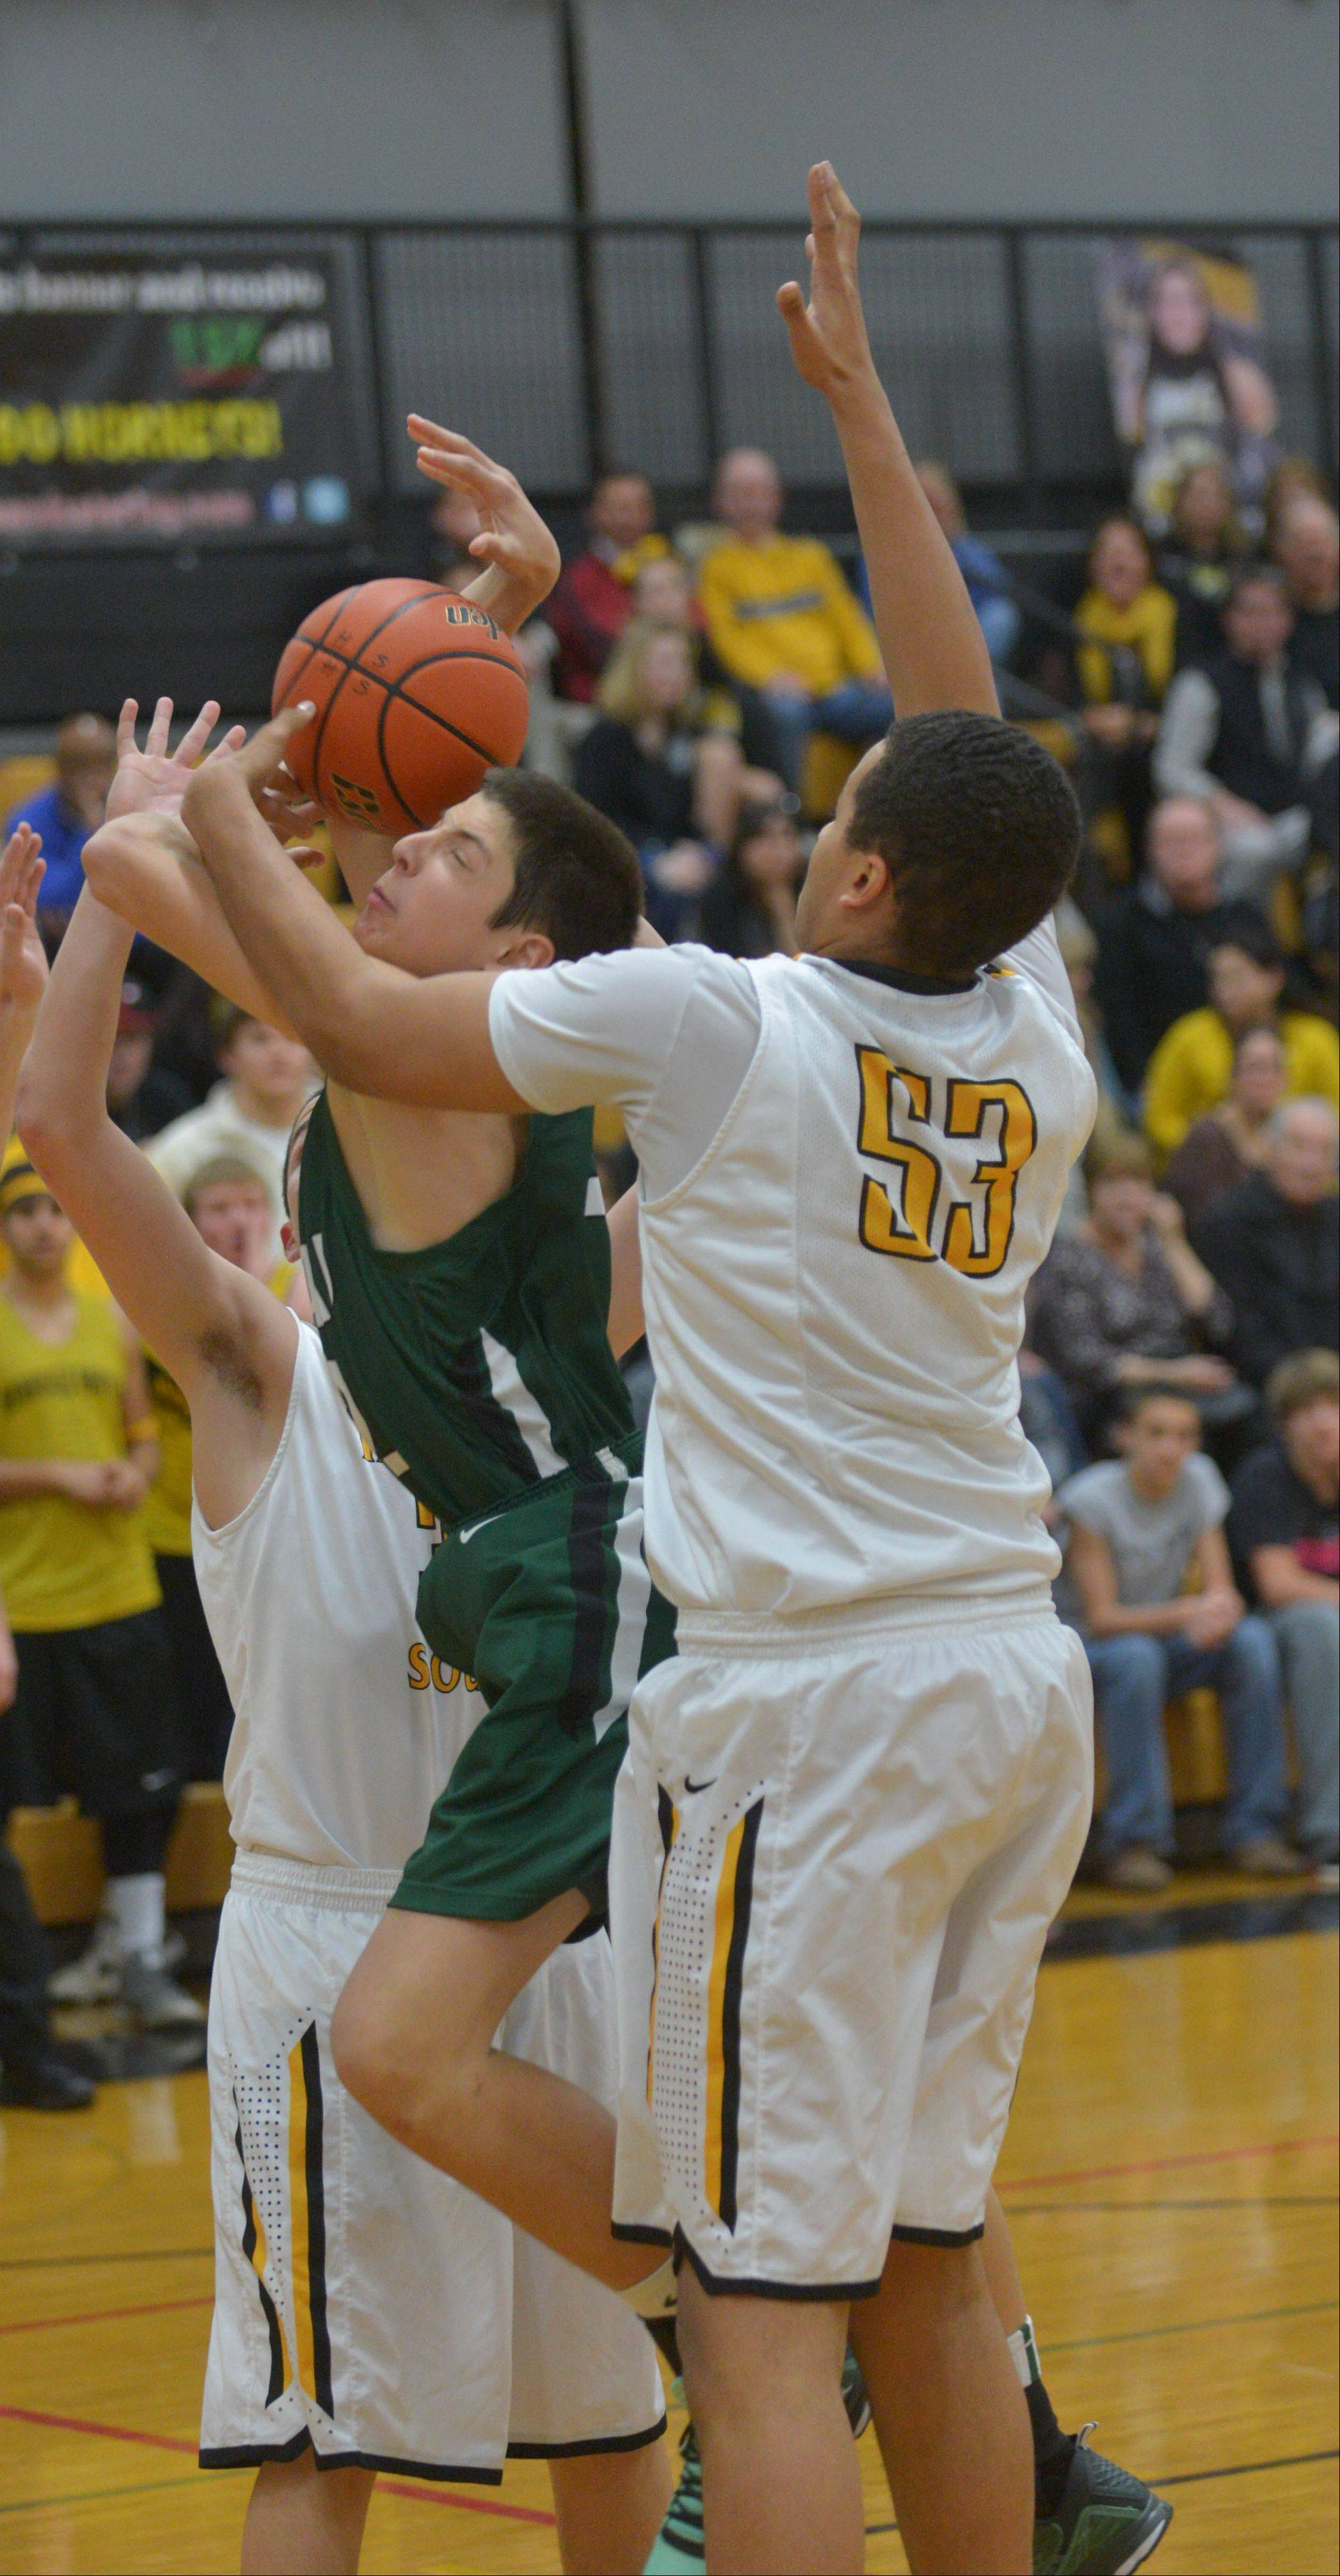 Justin Pierce of Glenbard West takes one to the net while Barrett Benson of Hinsdale South attempts to block during the Glenbard West at Hinsdale South boys basketball game Wednesday.